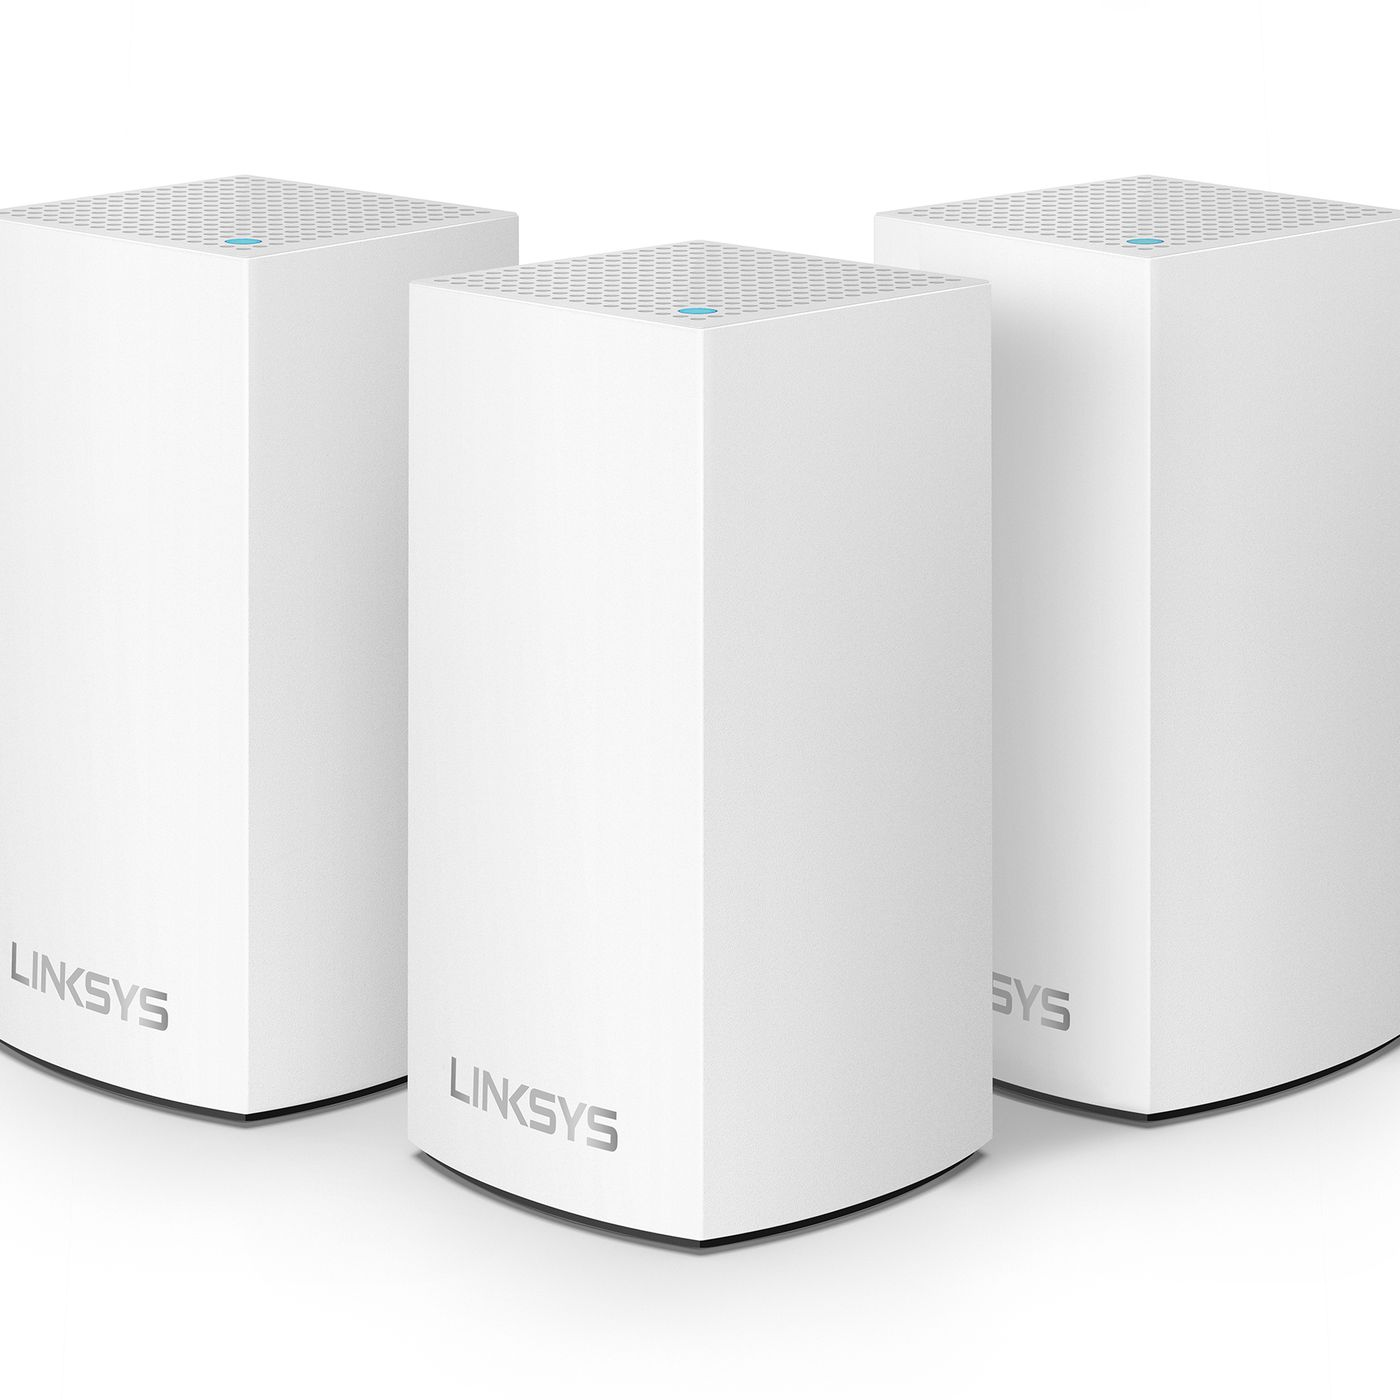 Linksys is now selling a cheaper version of its Velop mesh